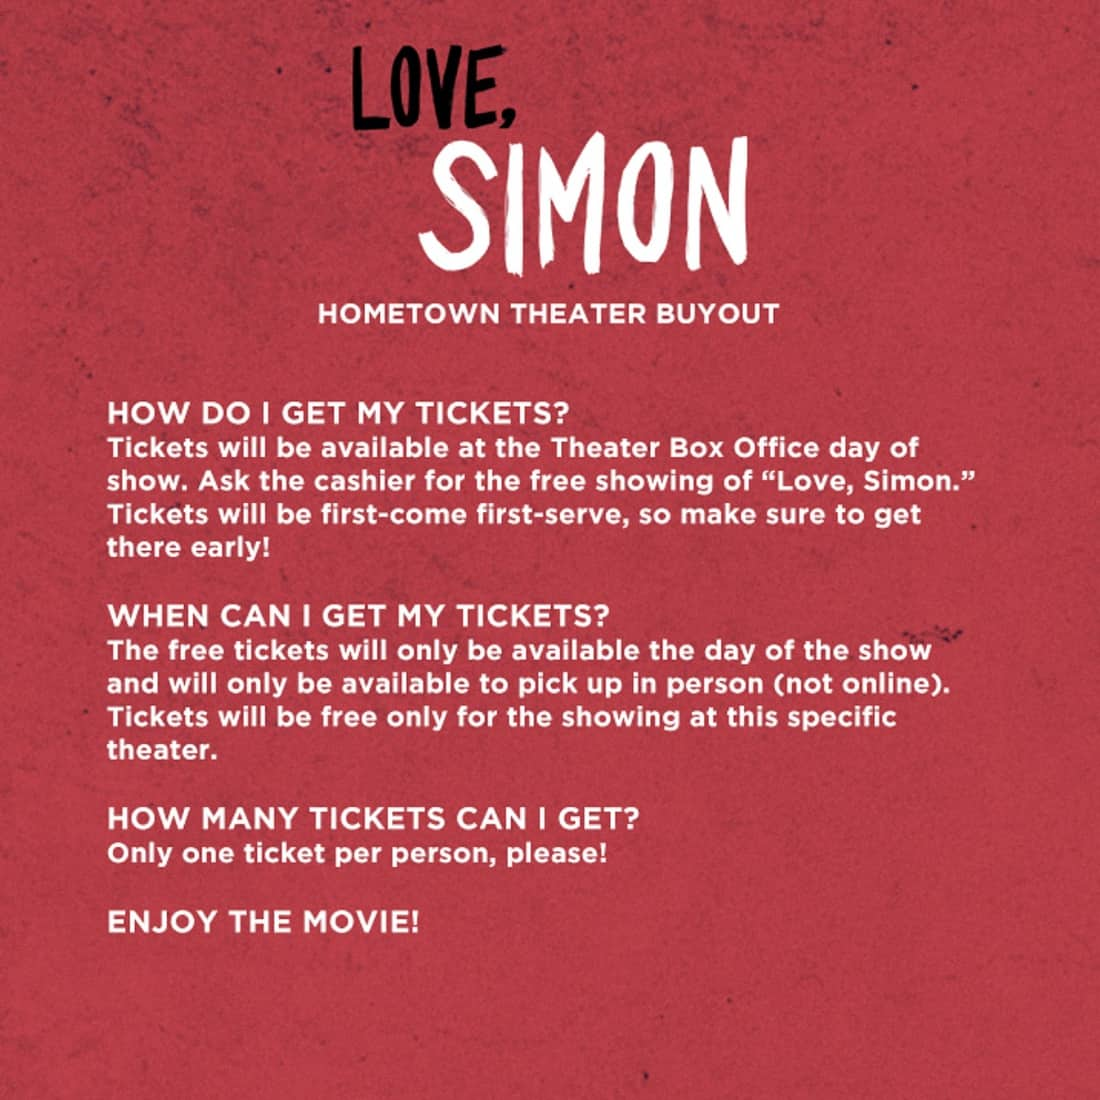 Love simon movie online free no sign up